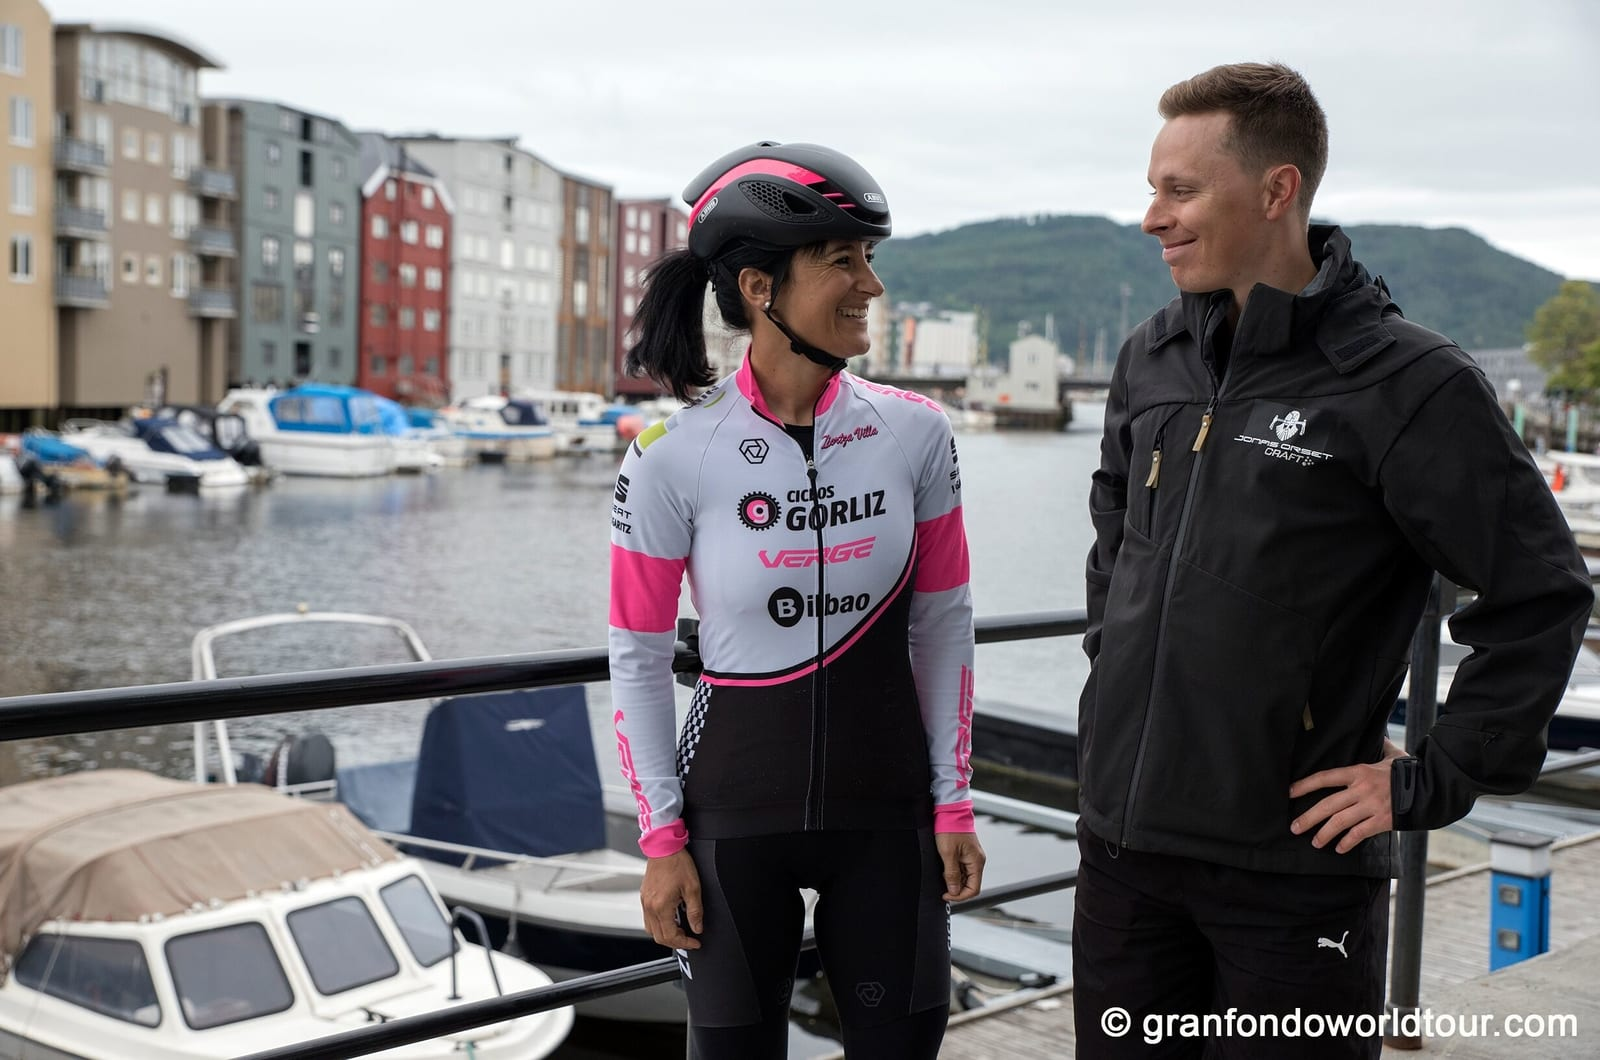 PRE RACE INTERVIEW: Før start ville Gran Fondo World Tour lage en liten sak av meg og  Ziortza Villa fra Baskerland. Foto: Grand Fondo World Tour